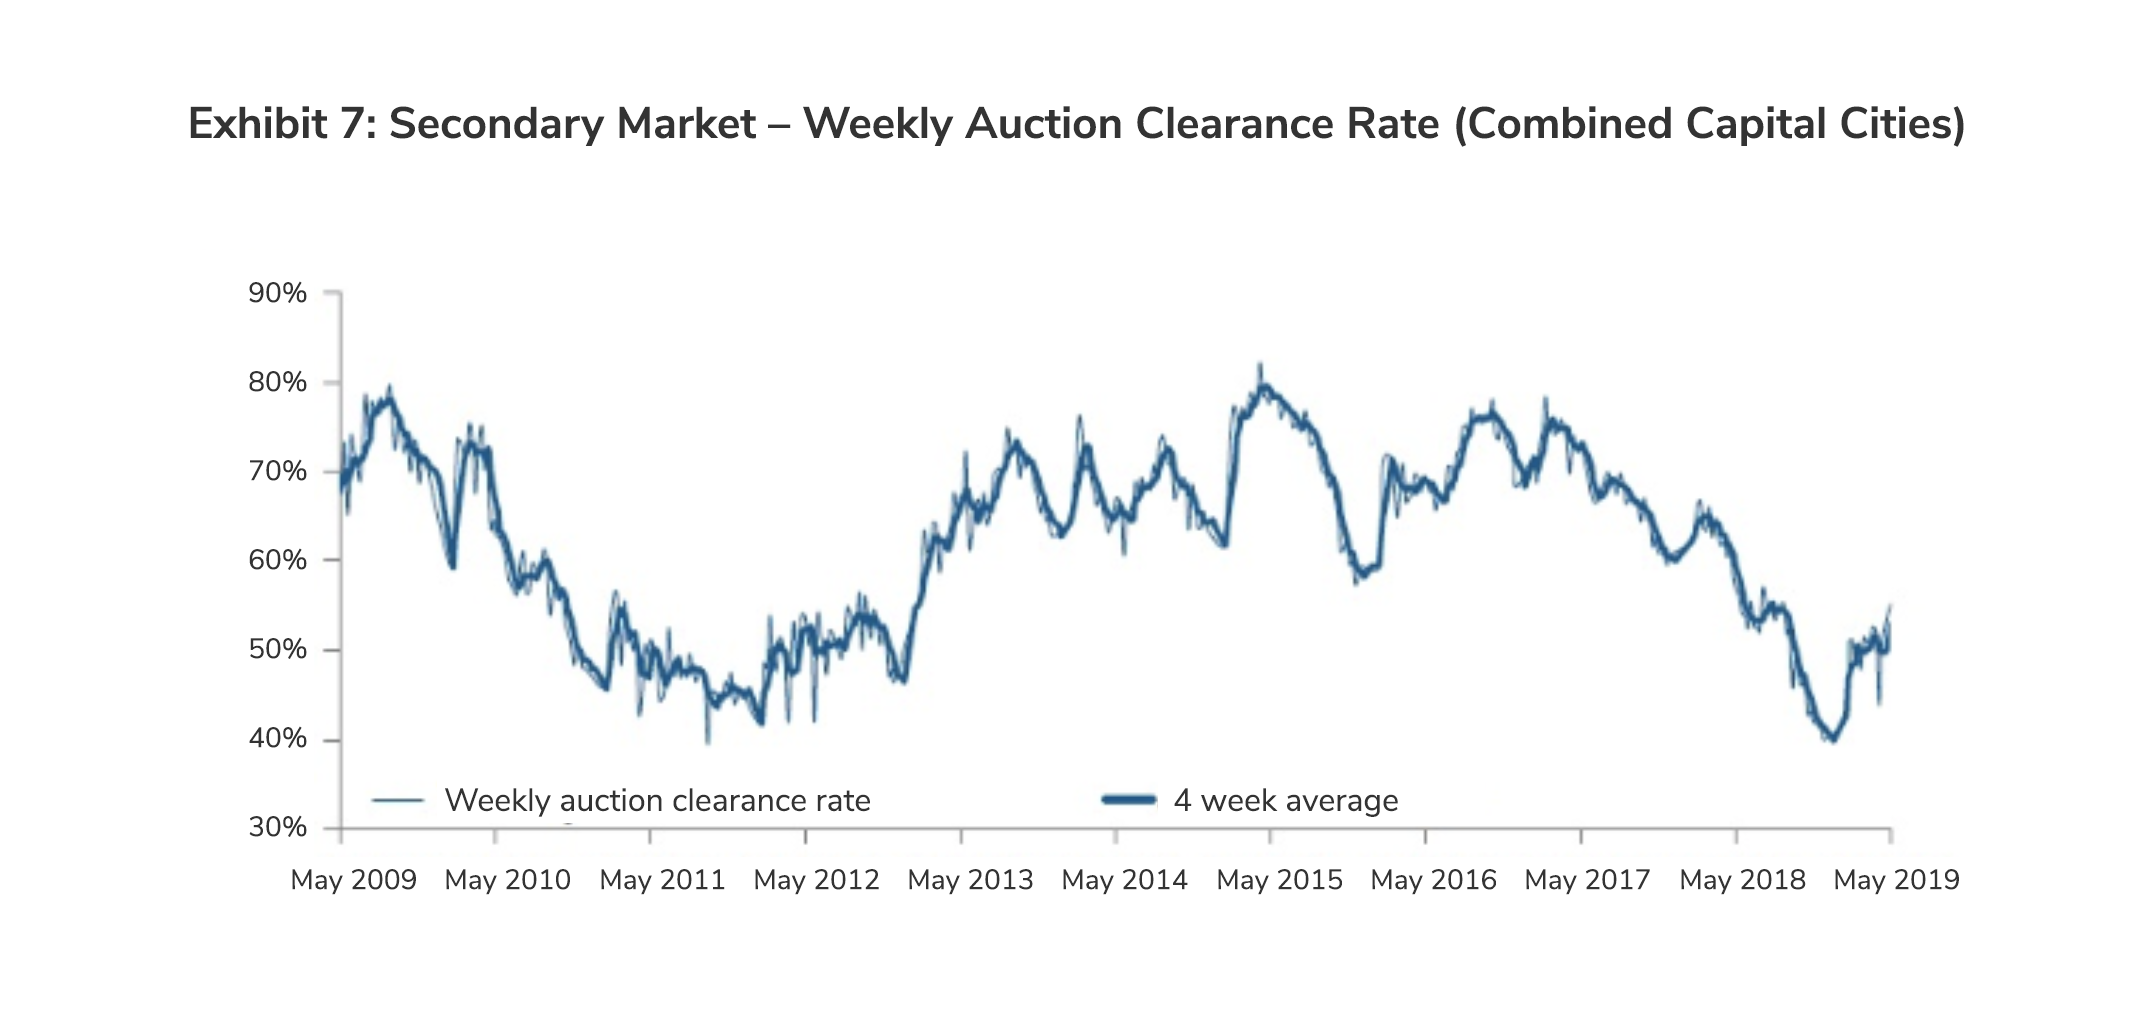 Secondary Market - Weekly Auction Clearance Rate (Combined Capital Cities)